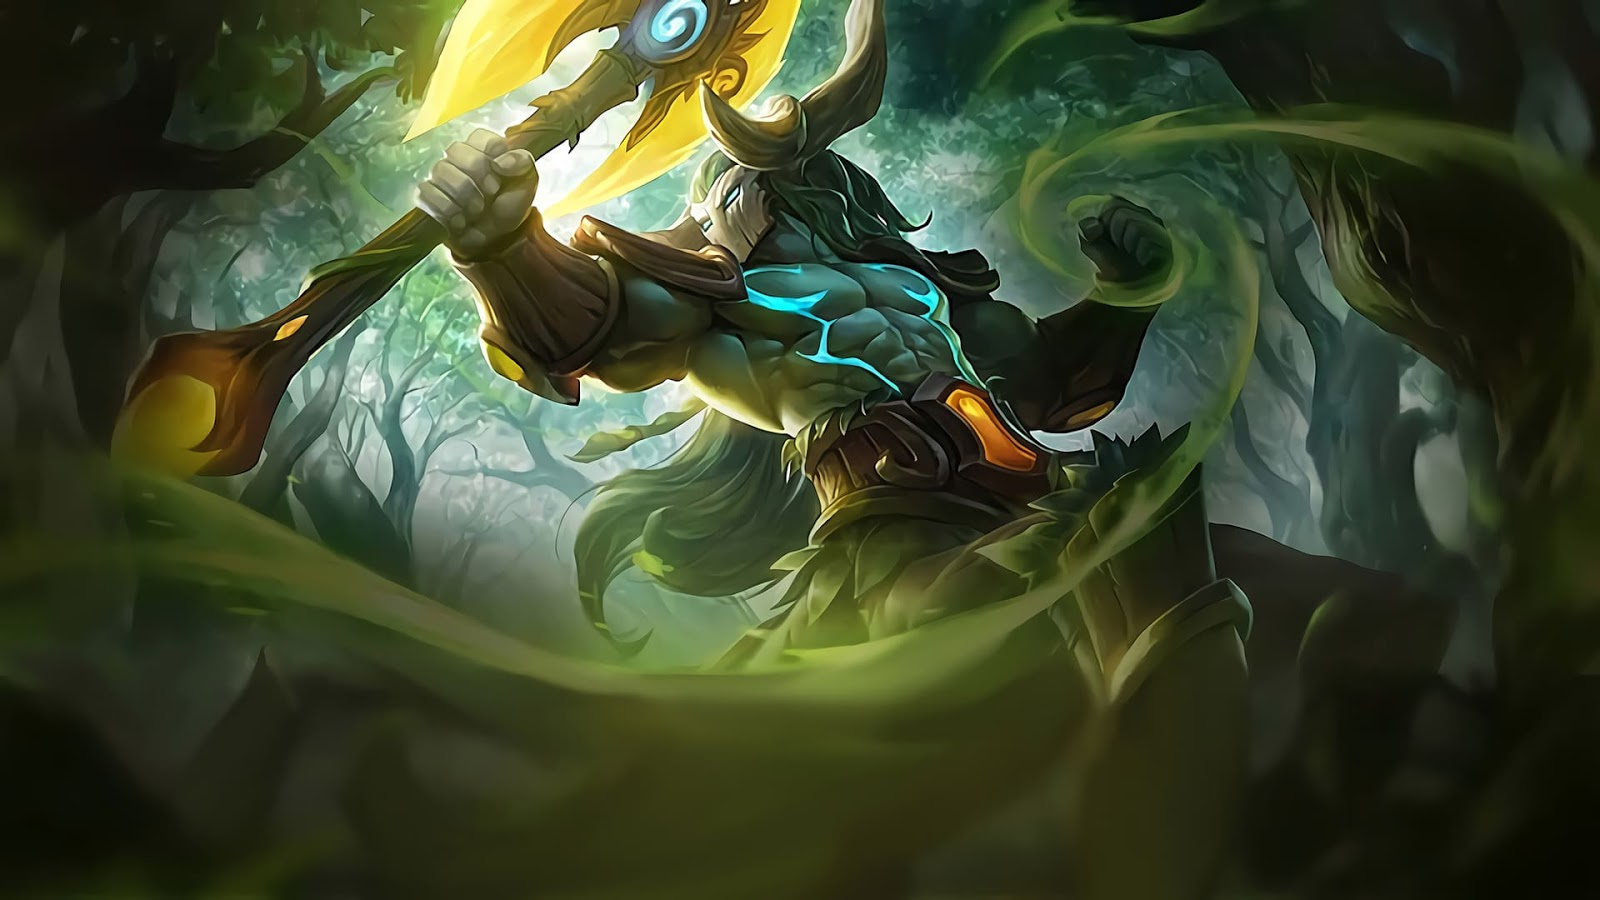 Wallpaper Hylos Jungle Watcher Skin Mobile Legends HD for PC